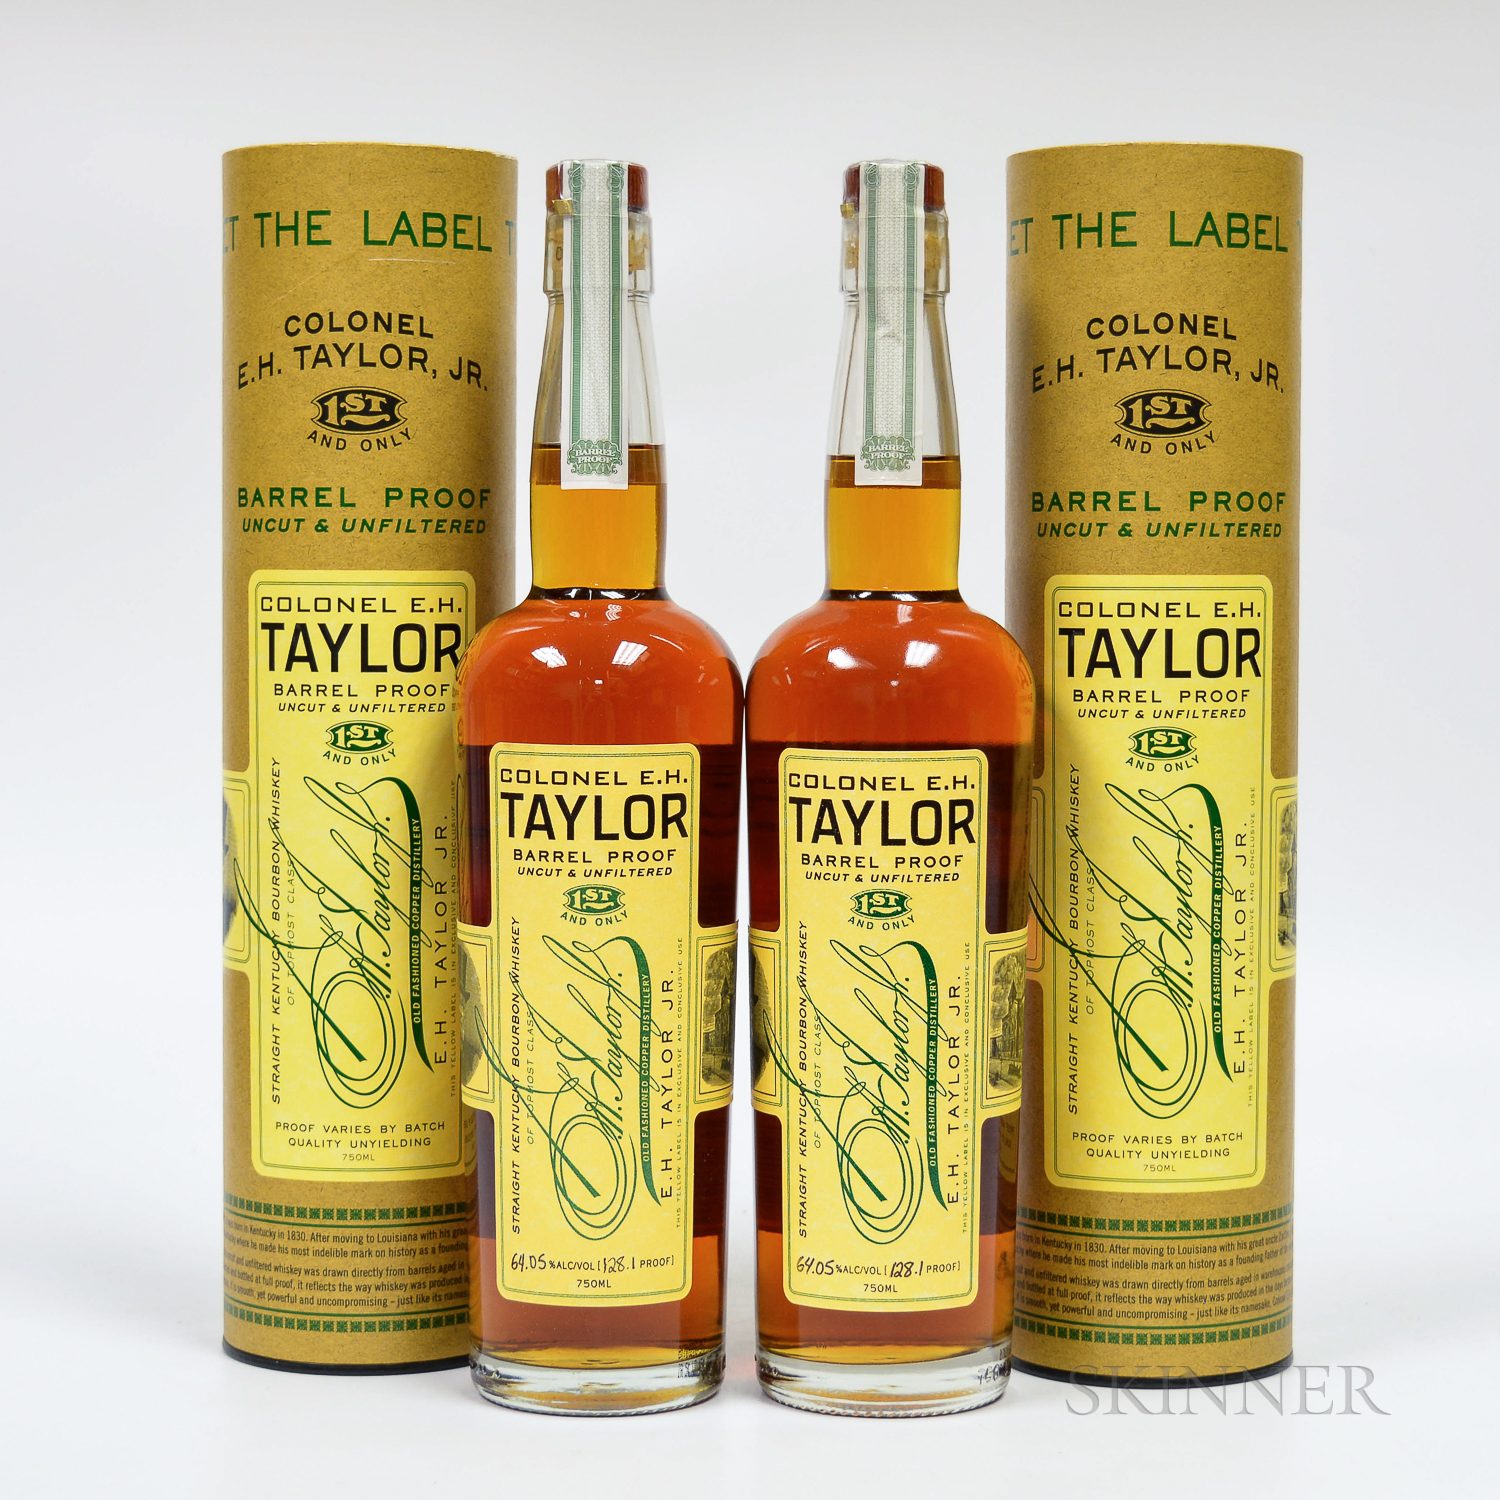 Colonel EH Taylor Barrel Proof, 2 750ml bottles (ot)